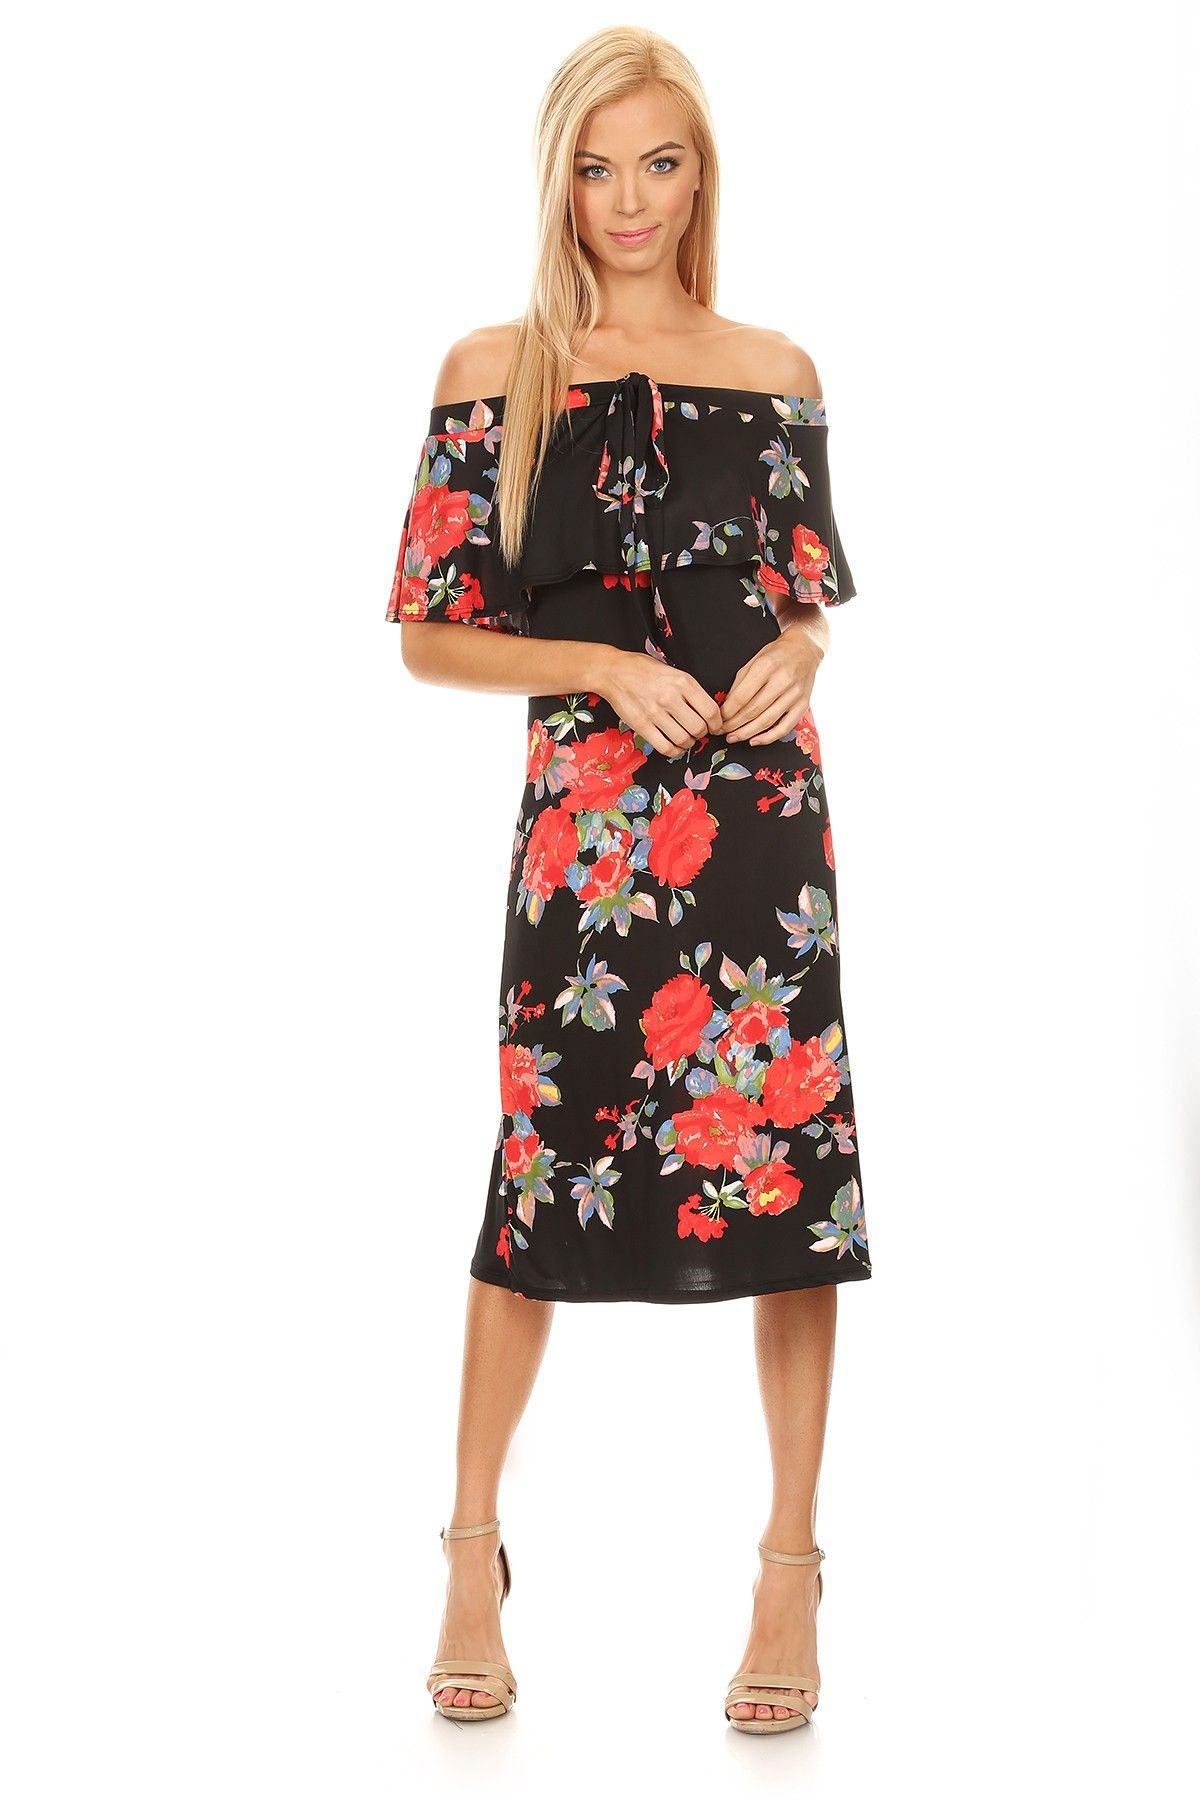 a0f5657450 New Arrival from our Spring Summer Collection Floral printed off shoulder  A-line dress with layered detail and elastic neckline with drawstring  accent.